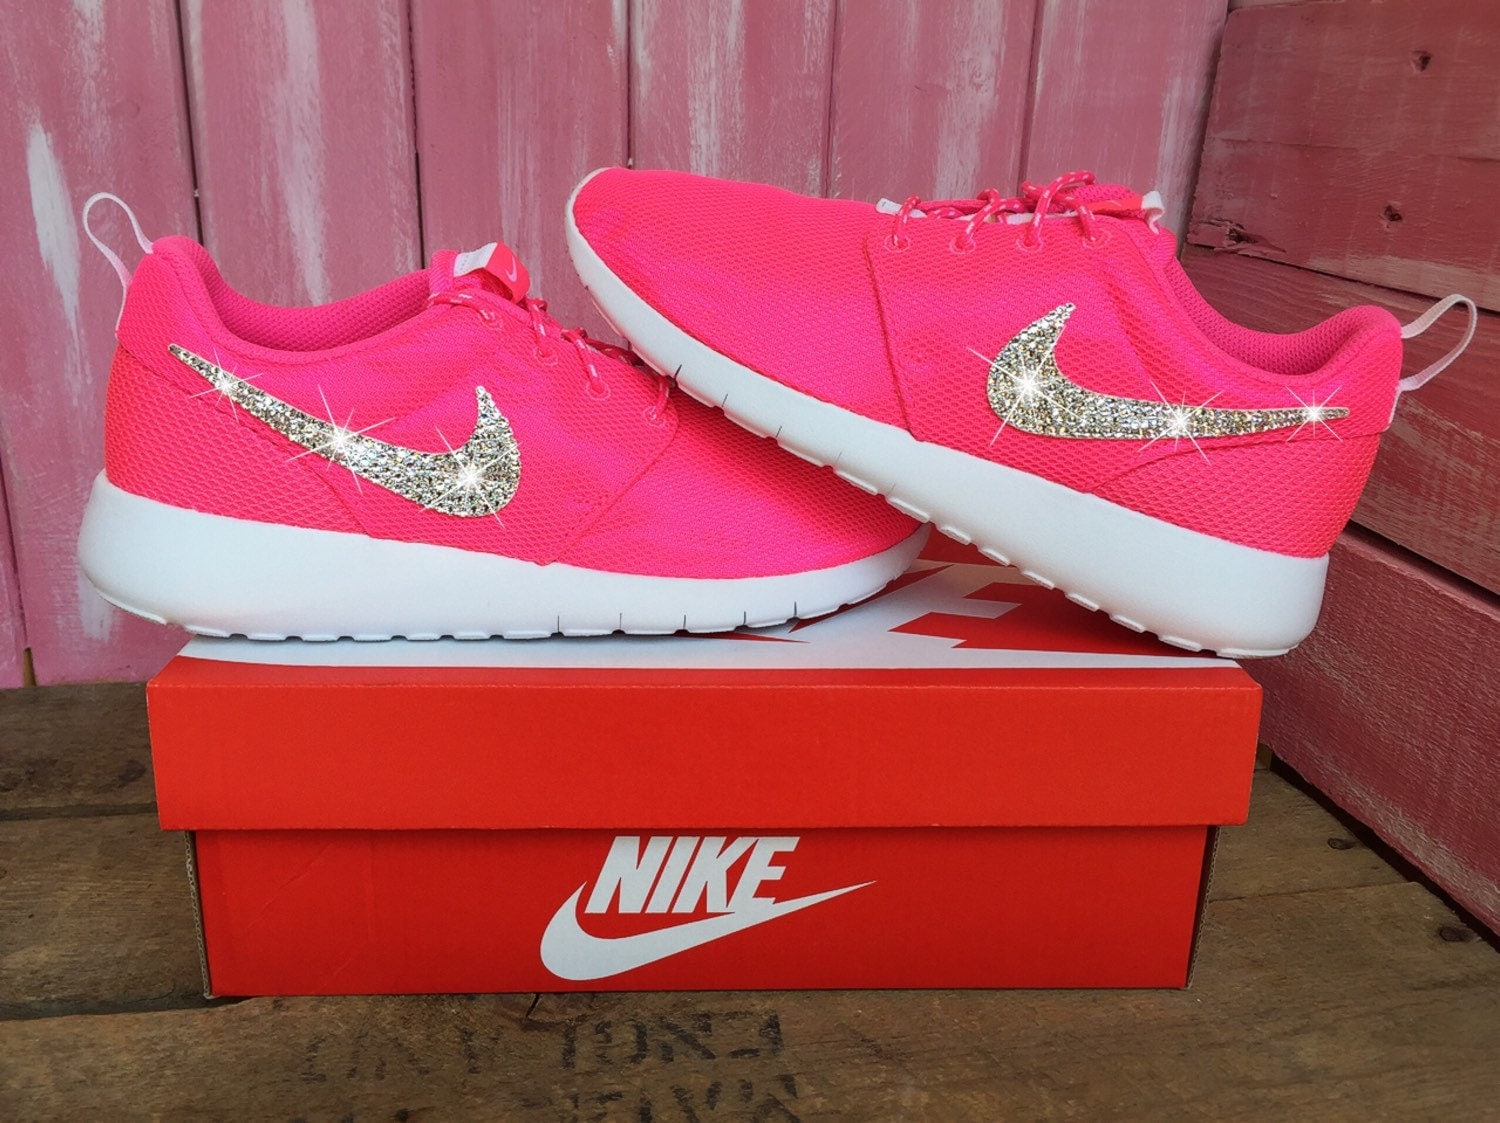 2a78cf4c59d0 durable service Blinged Preschool Swarovki Nike Roshe Shoes Pink by  ShopPinkIvy